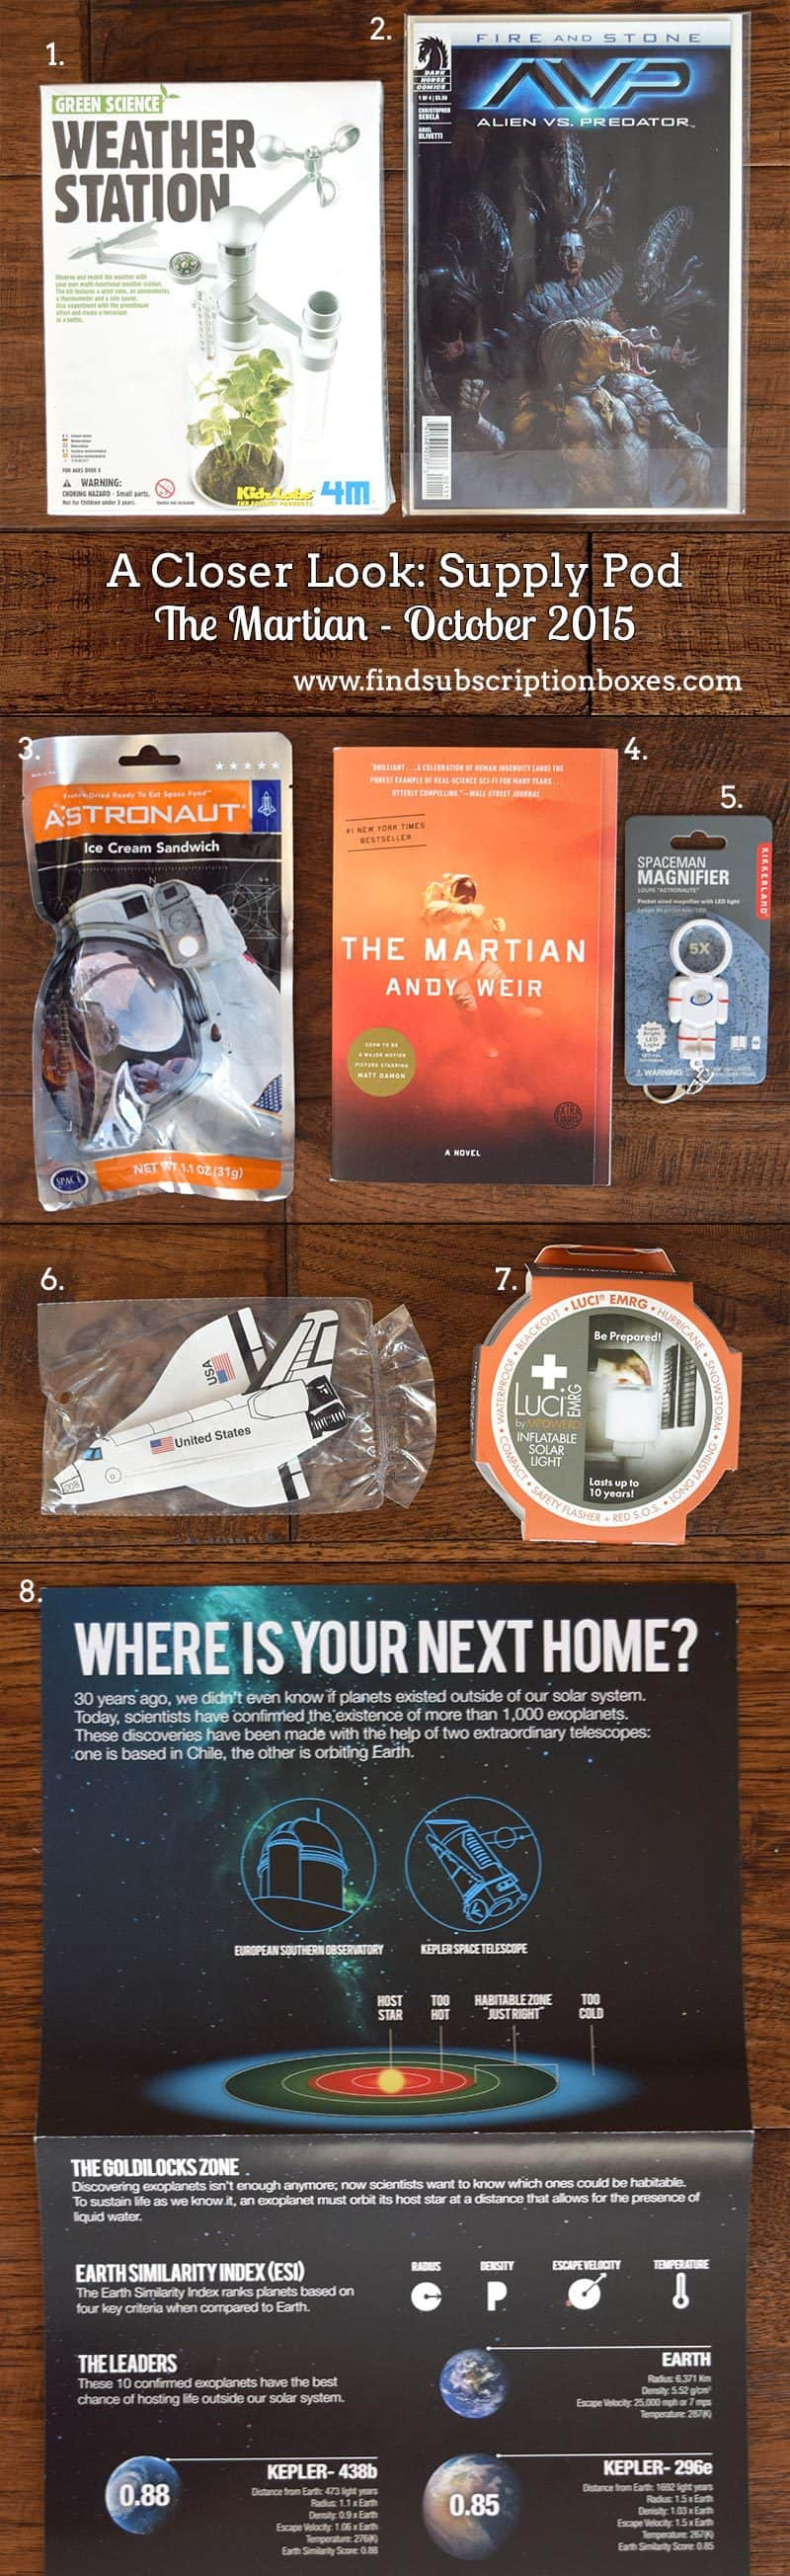 October 2015 Supply Pod The Martian Review - Inside the Box